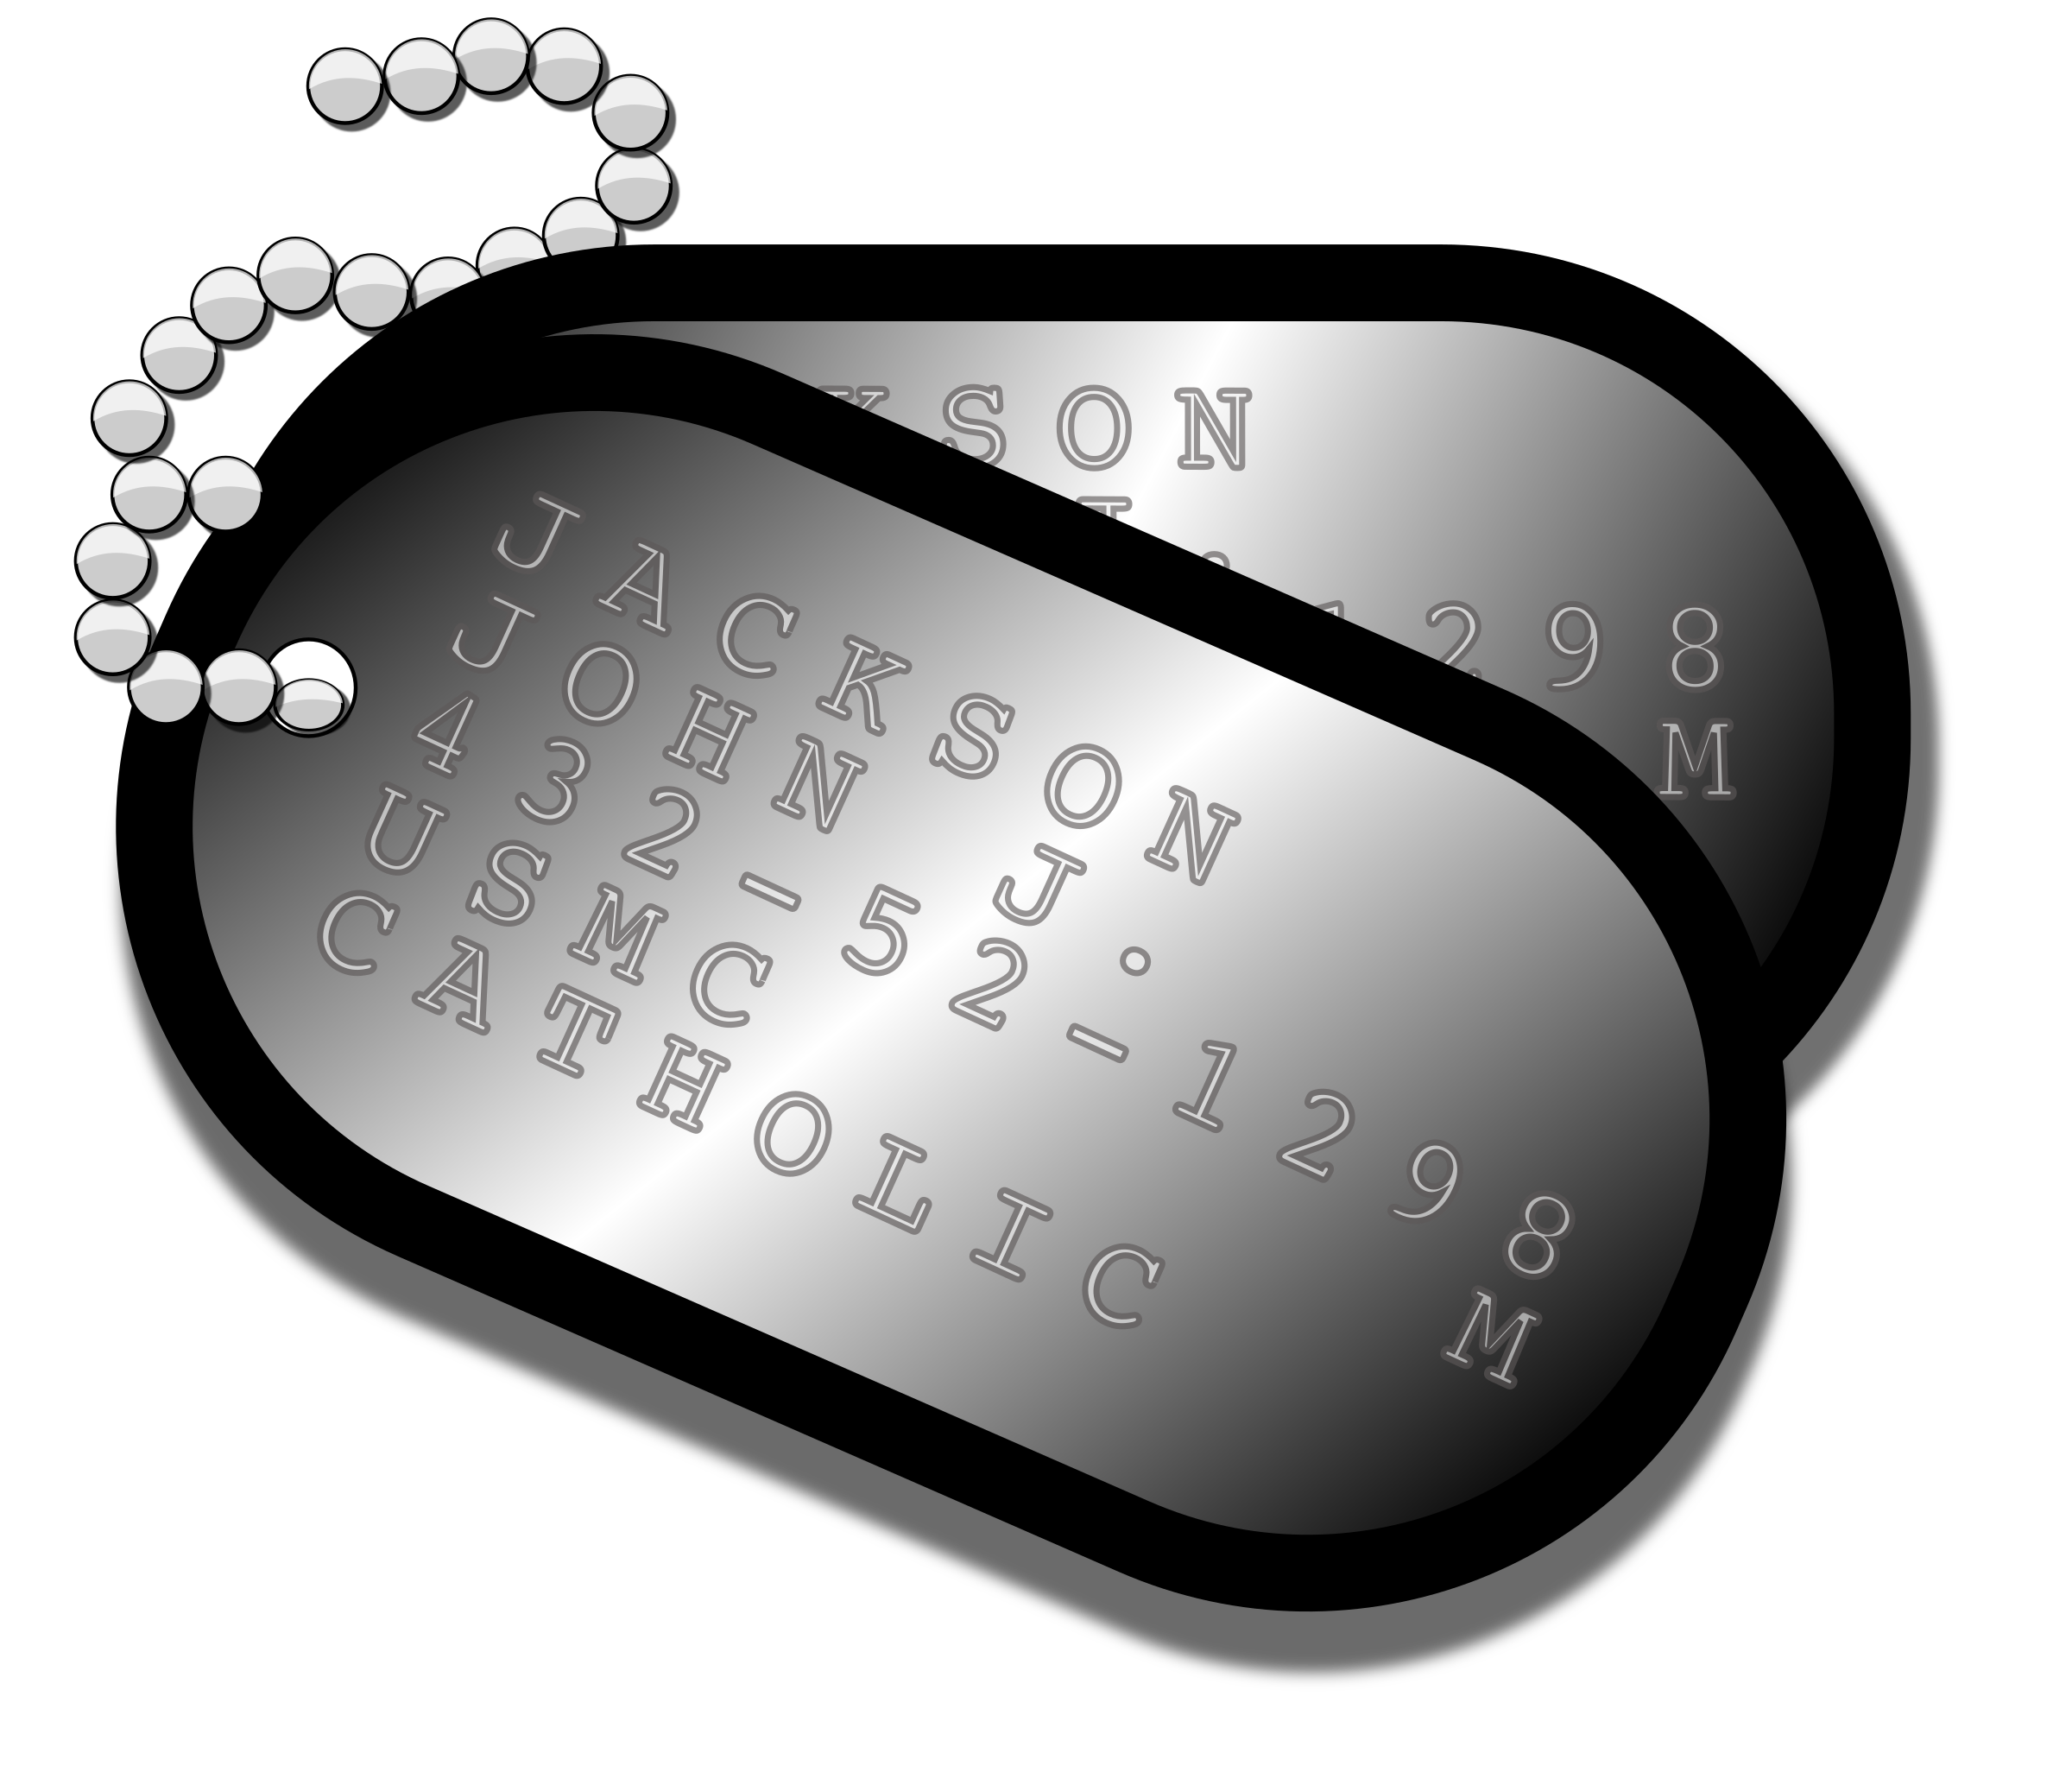 Army dog tag clipart picture transparent stock Clipart - Military Dog Tags picture transparent stock